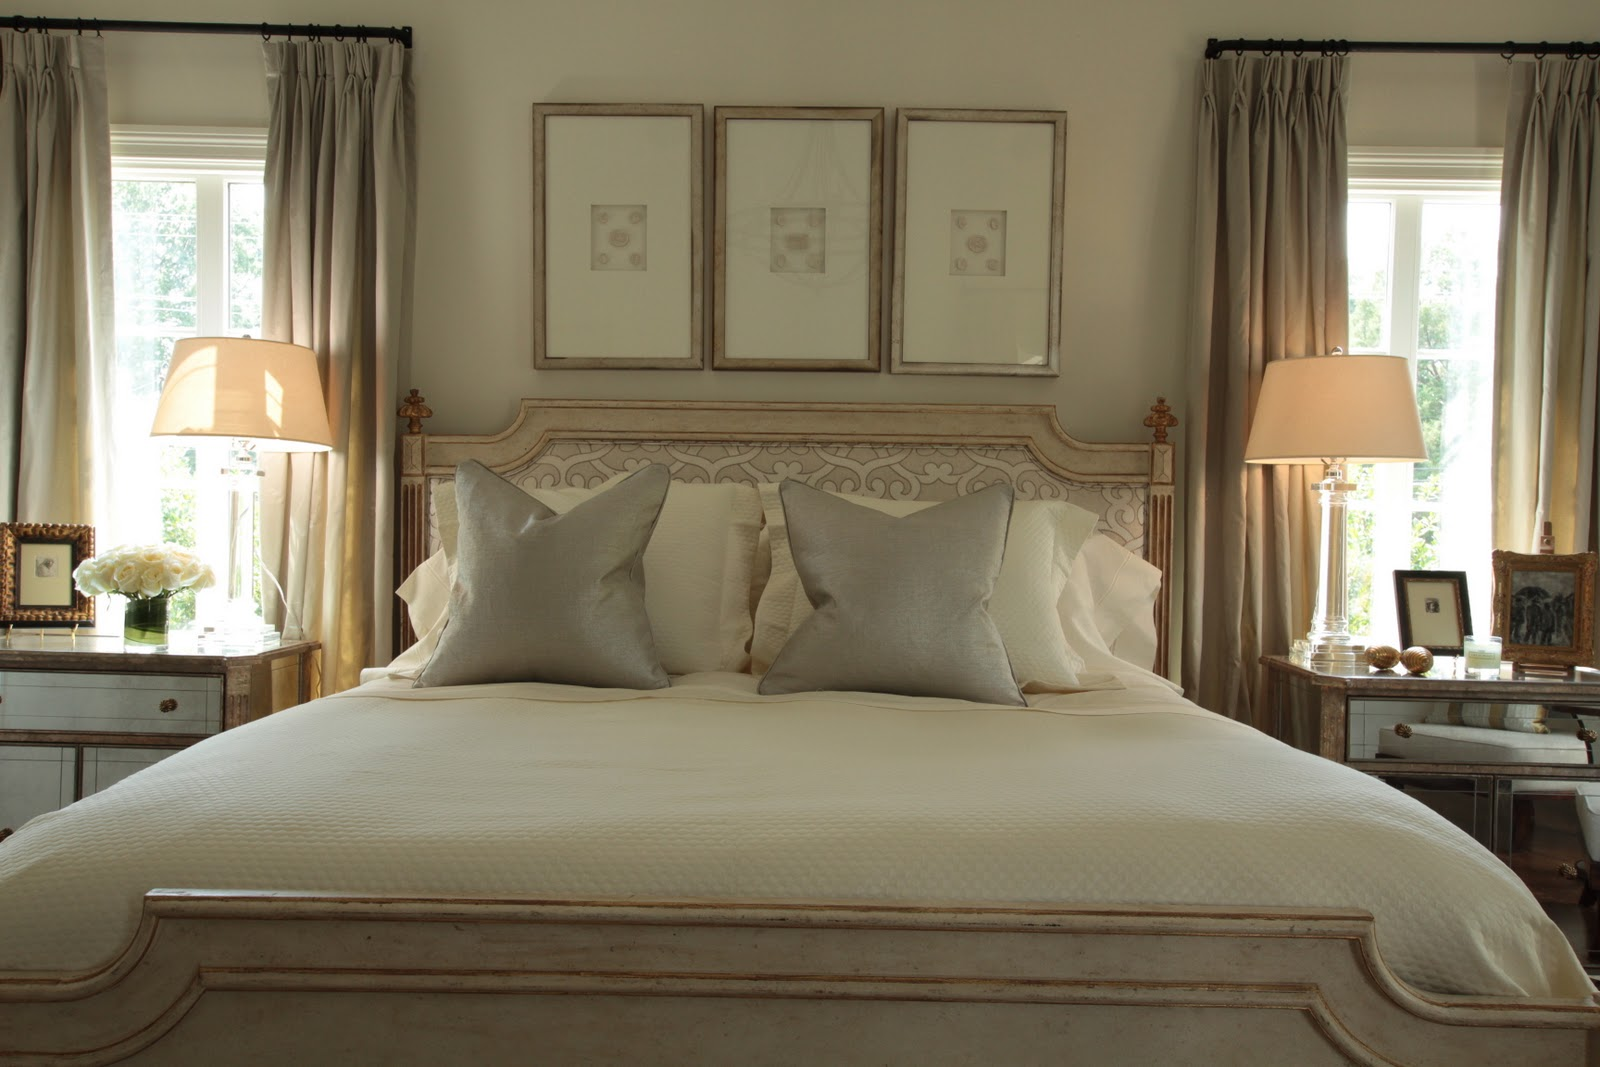 Showhouse Master Bedroom | Rescue. Restore. Redecorate. on Master Bedroom Ideas  id=37057